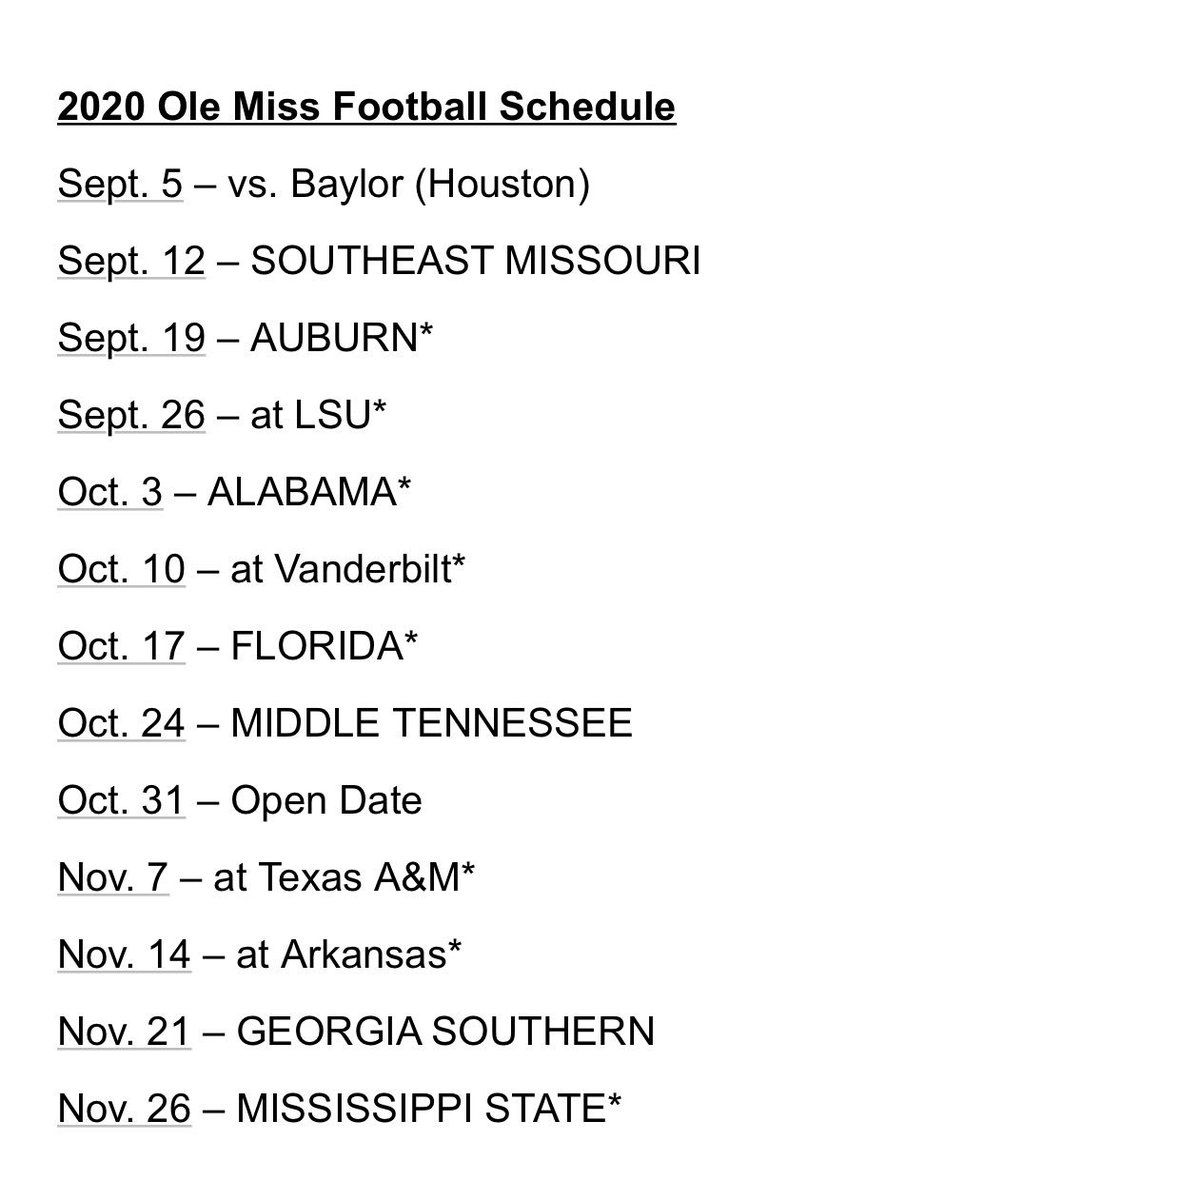 Ole Miss Football Schedule 2020.The Rebel Walk On Twitter Here S The 2020 Ole Miss